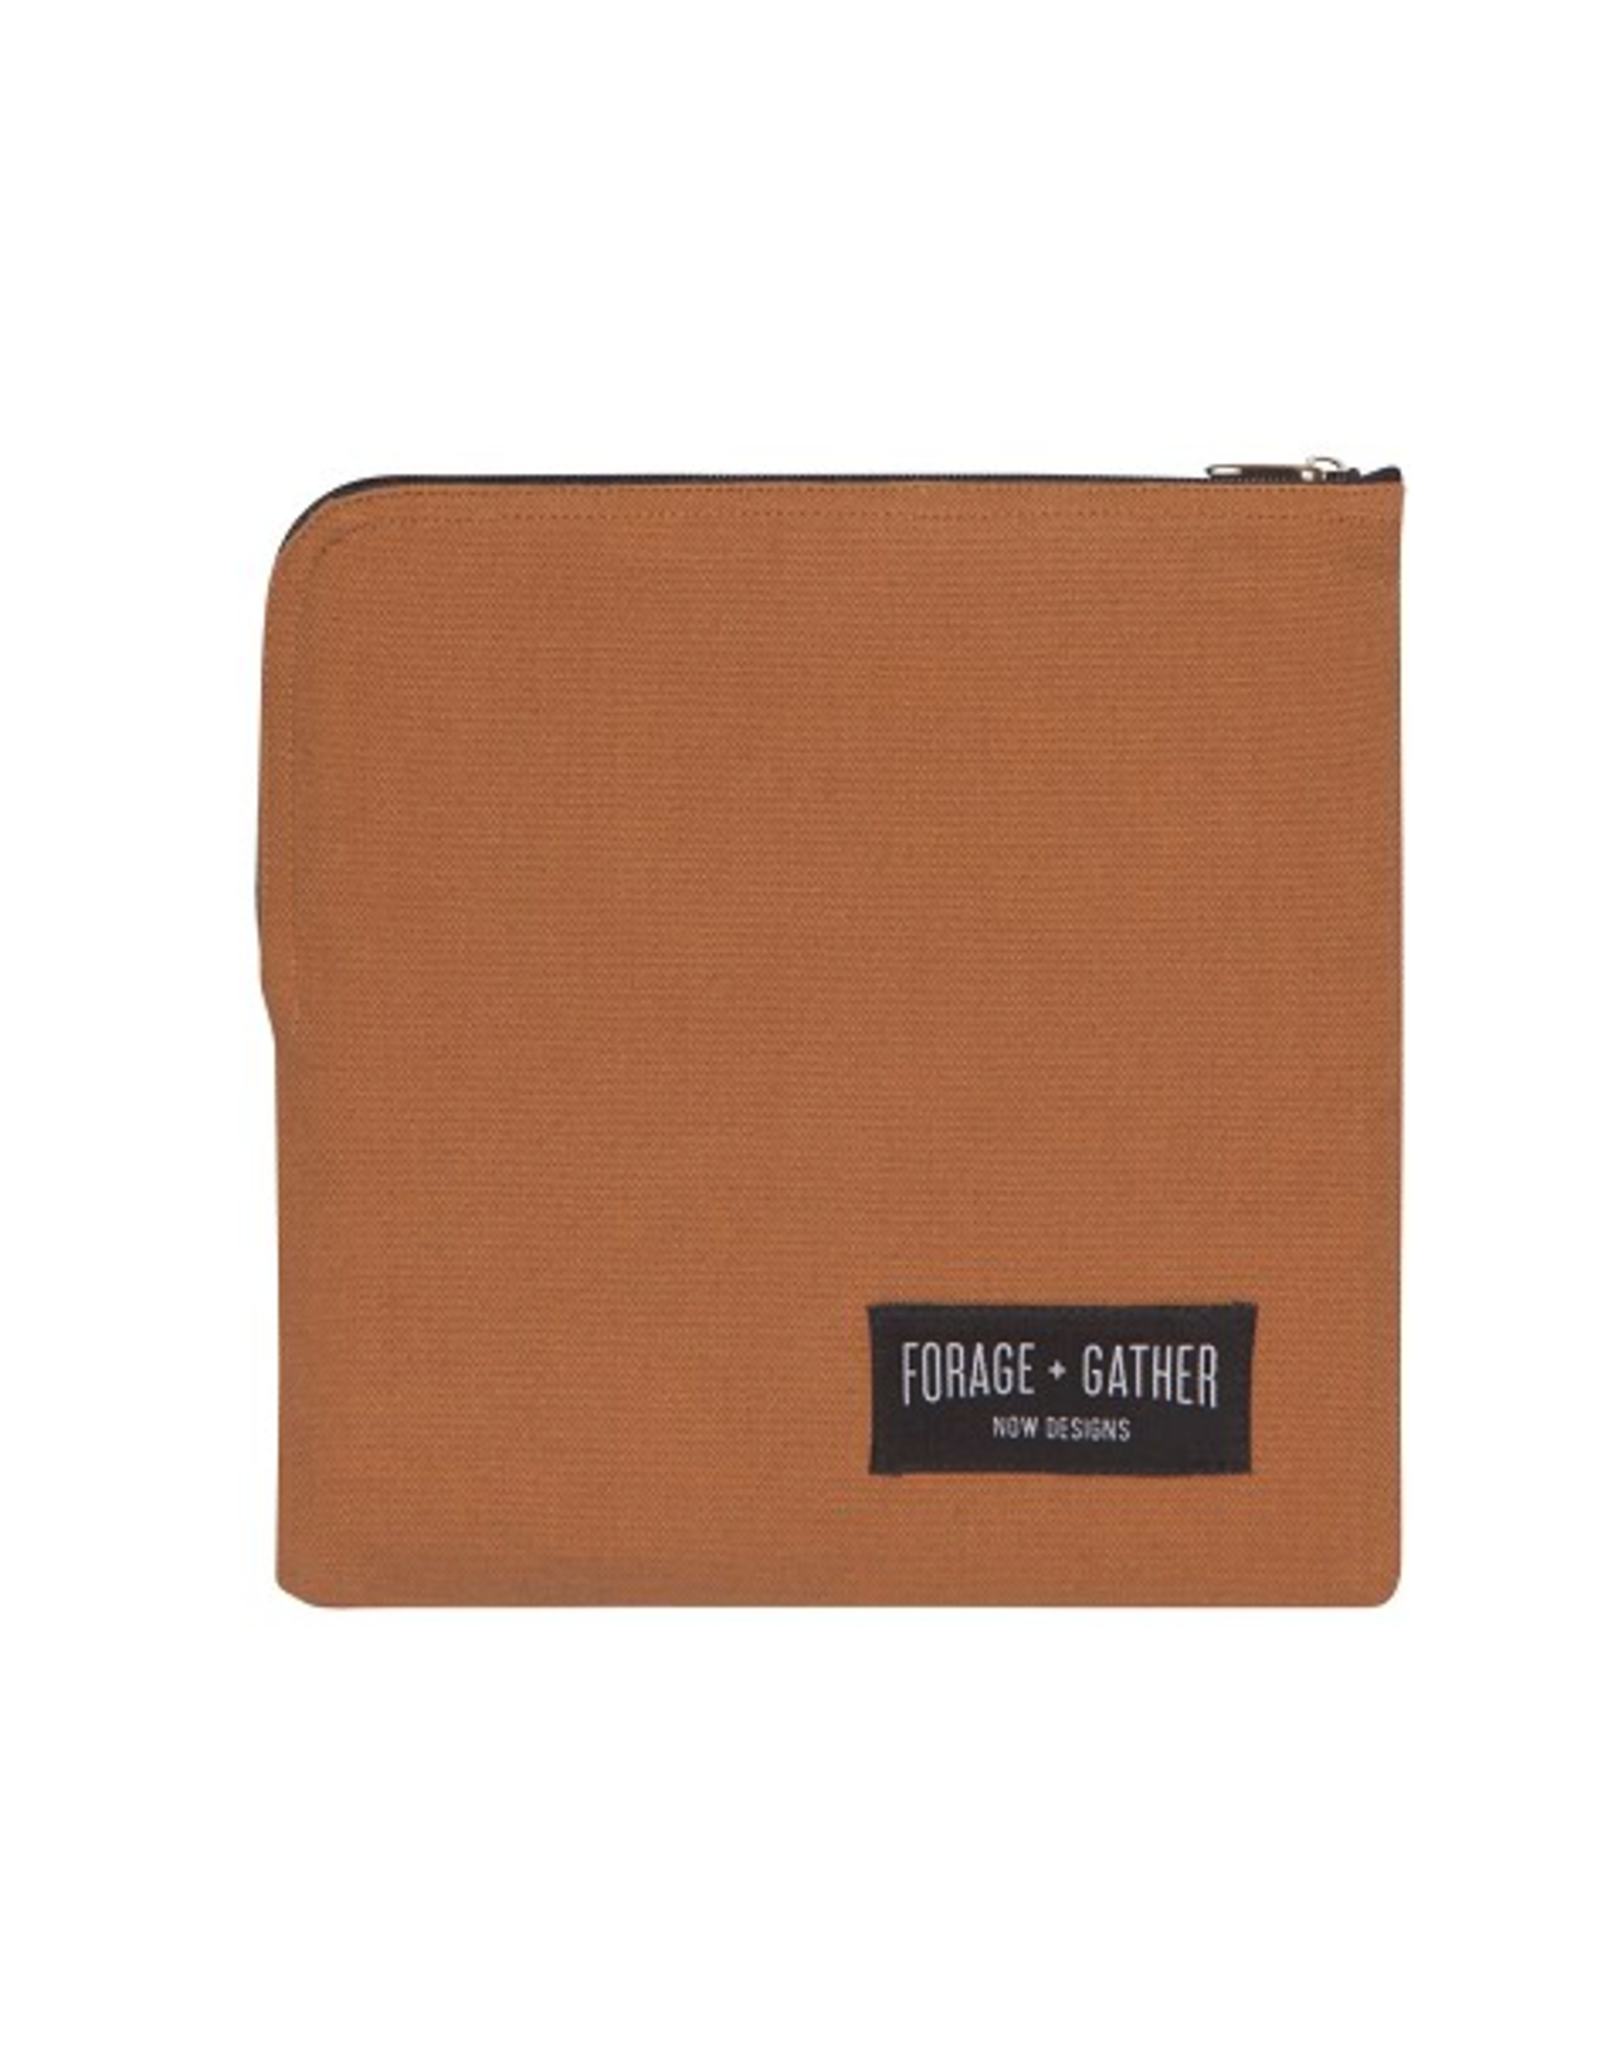 DCA - Snack Bag/Harvest Brown